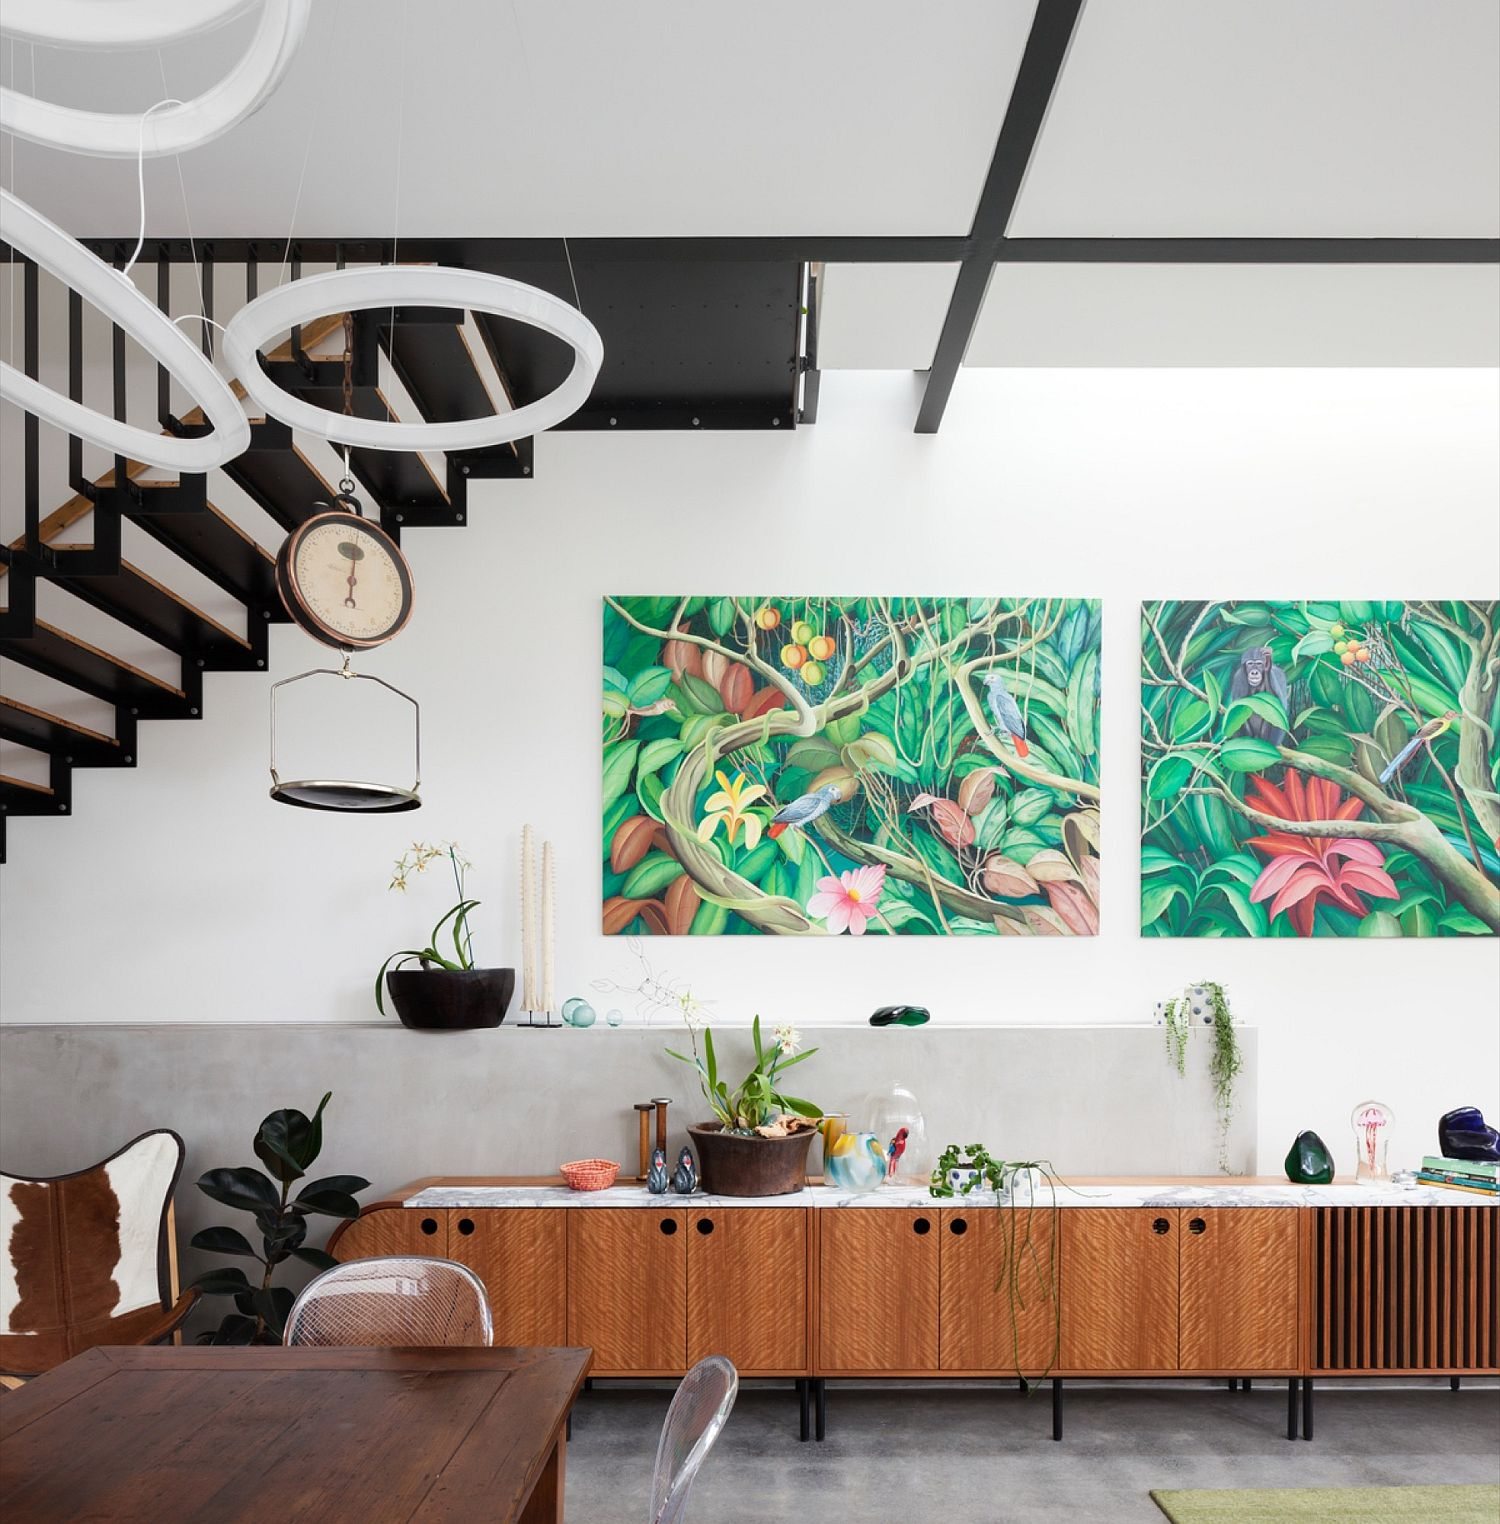 Wooden decor and bright wall paintings in the living space